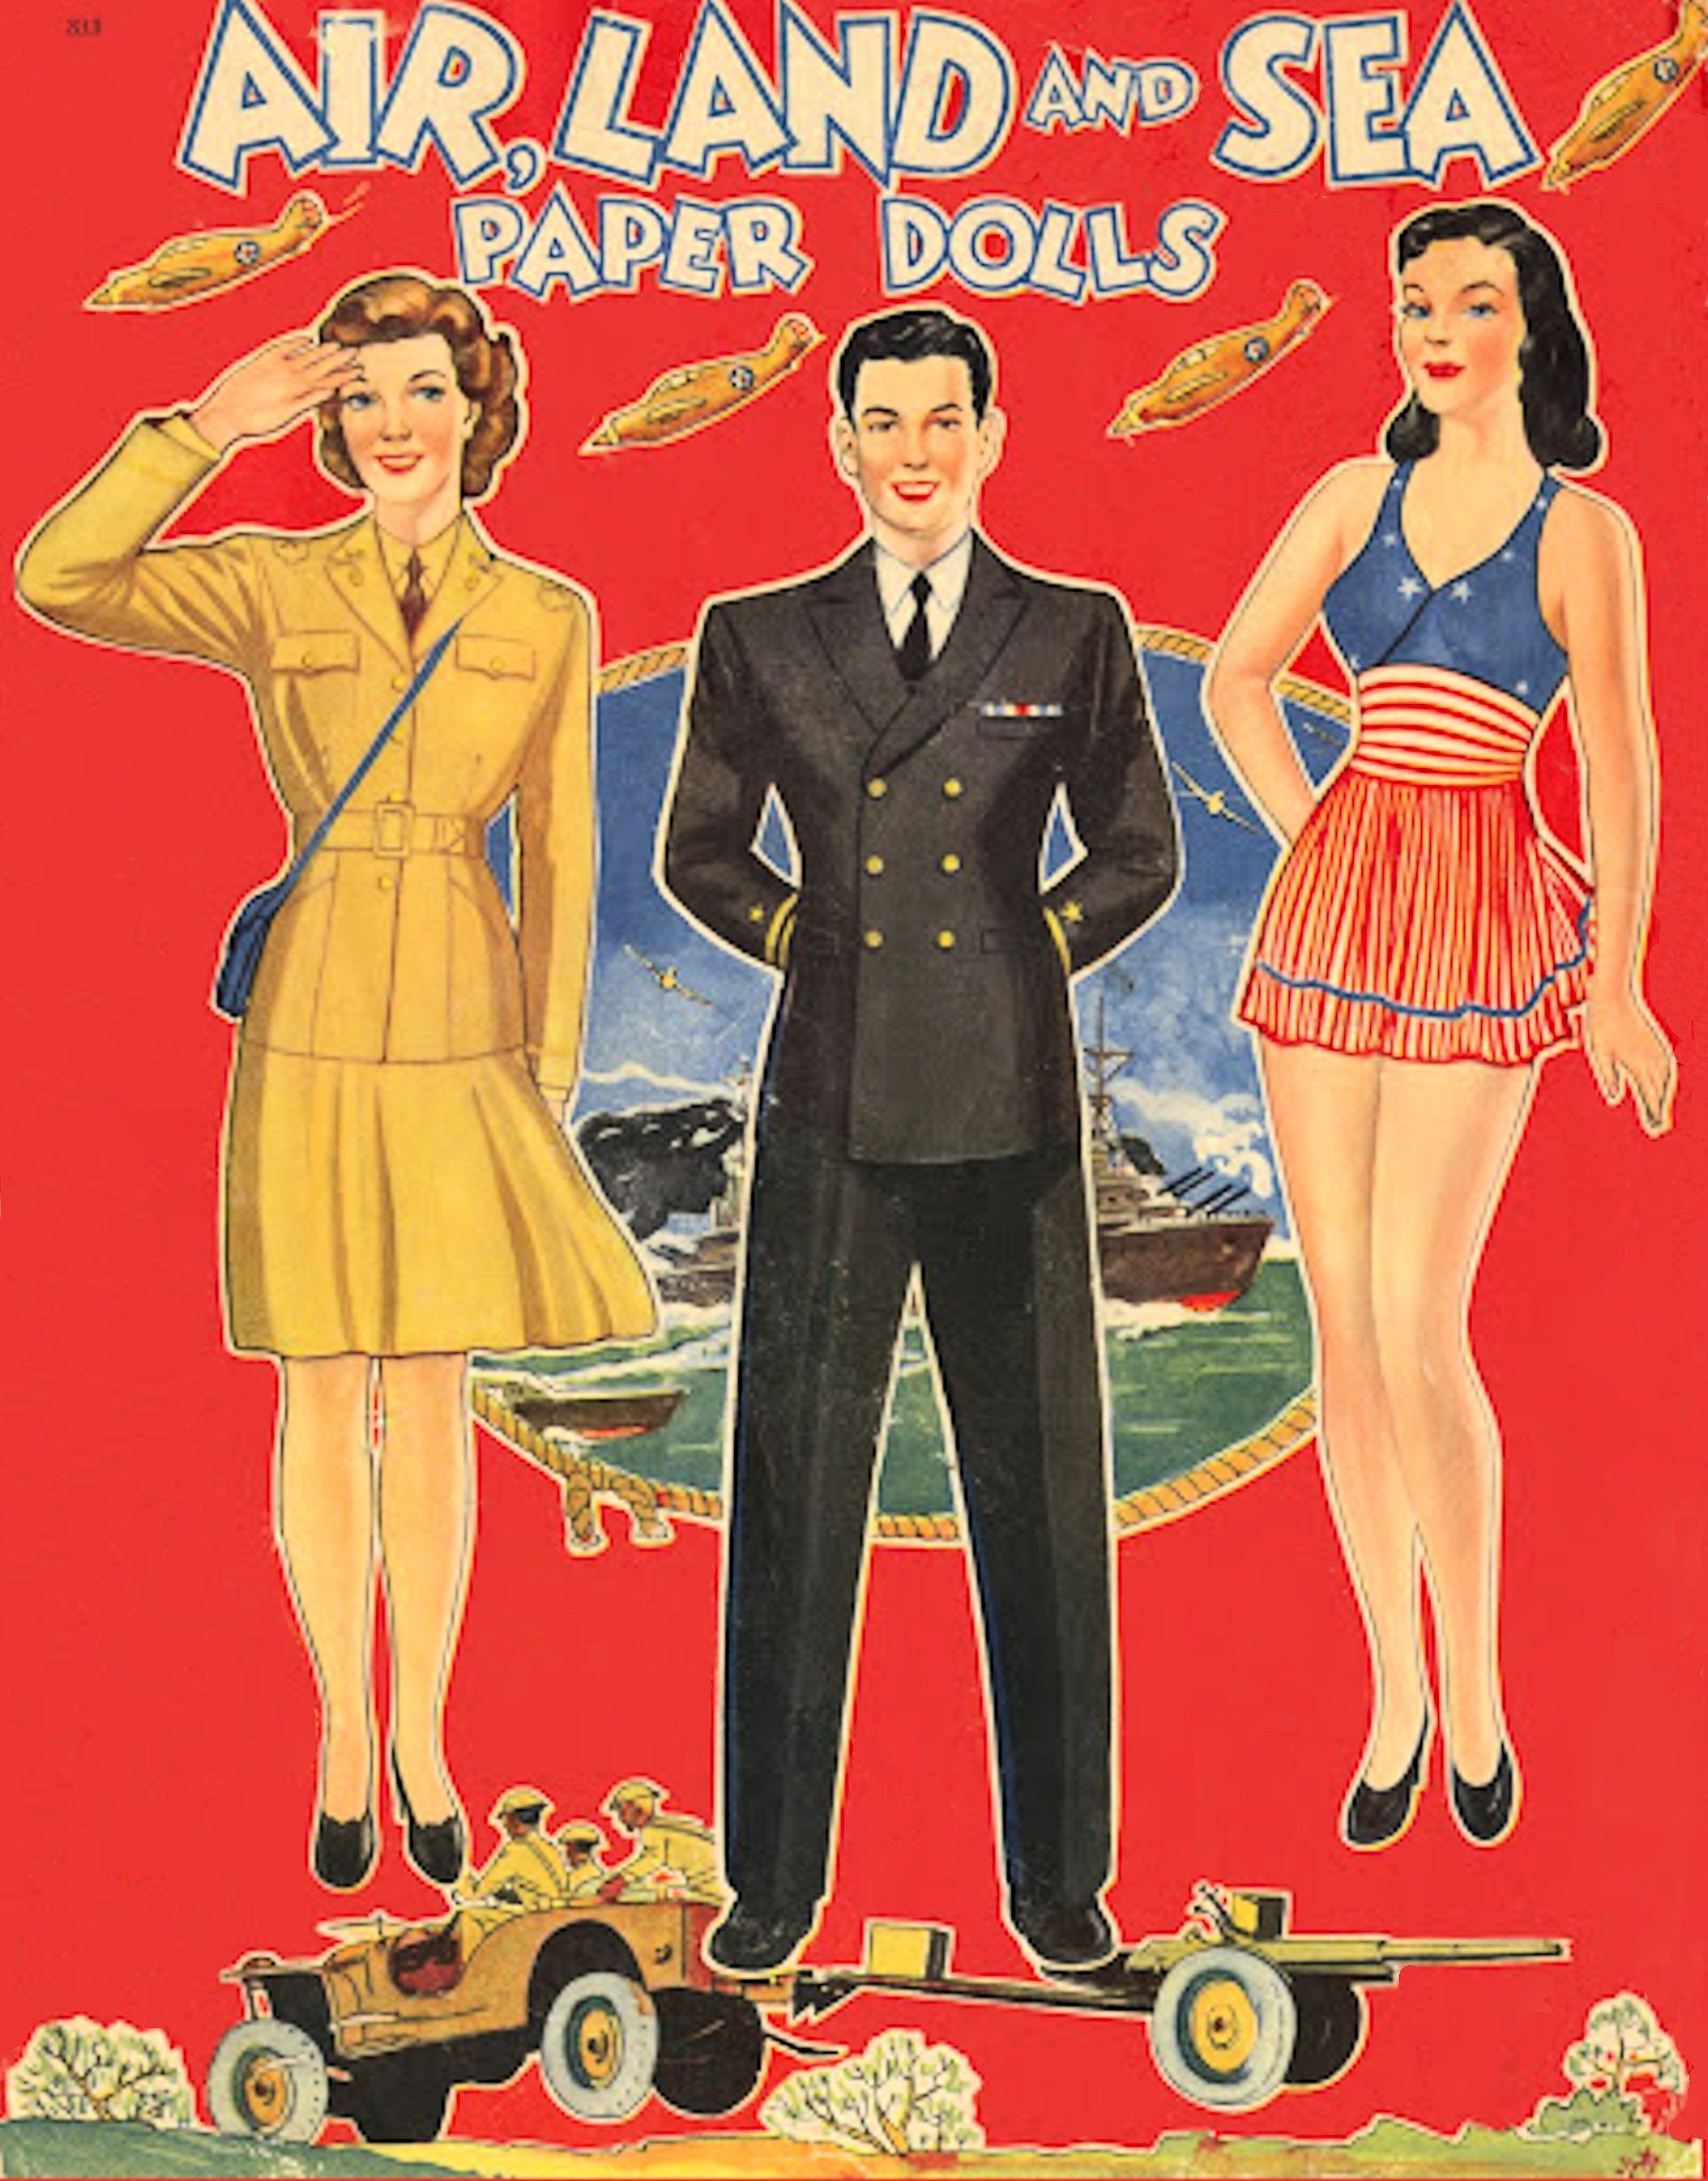 Air Land and Sea Paper Doll Book 1940, Toy Dolls Playset